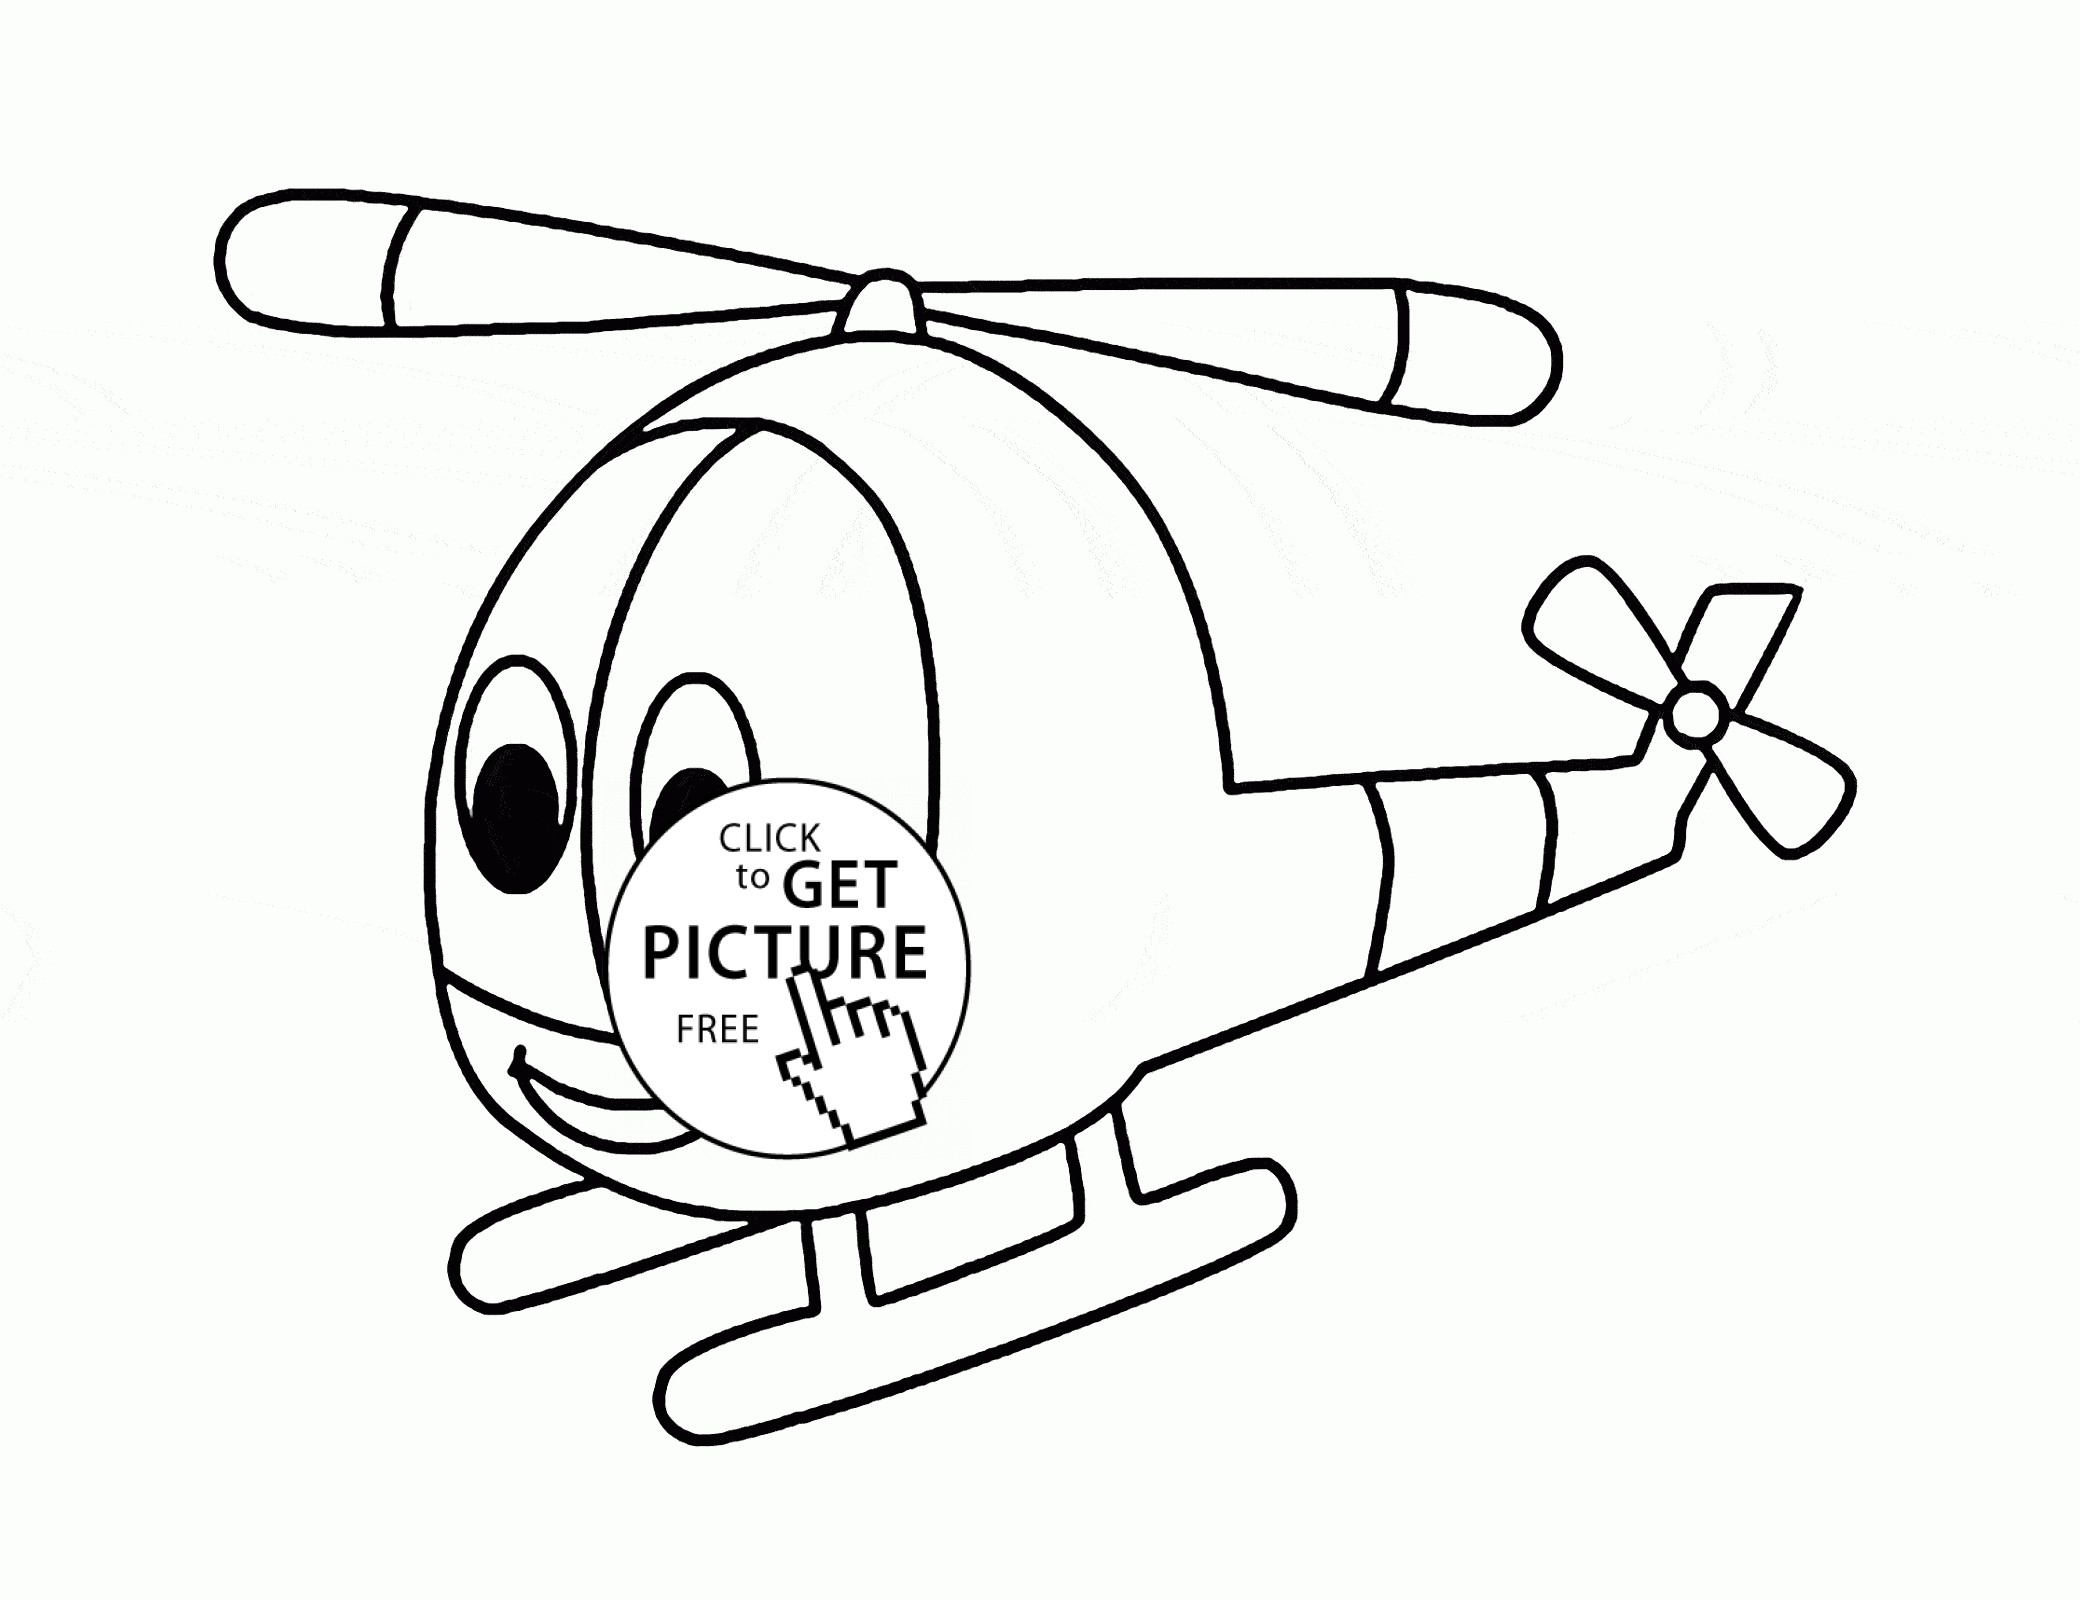 2080x1600 Helicopter Coloring Pages To Print Fresh Cute Small Helicopter